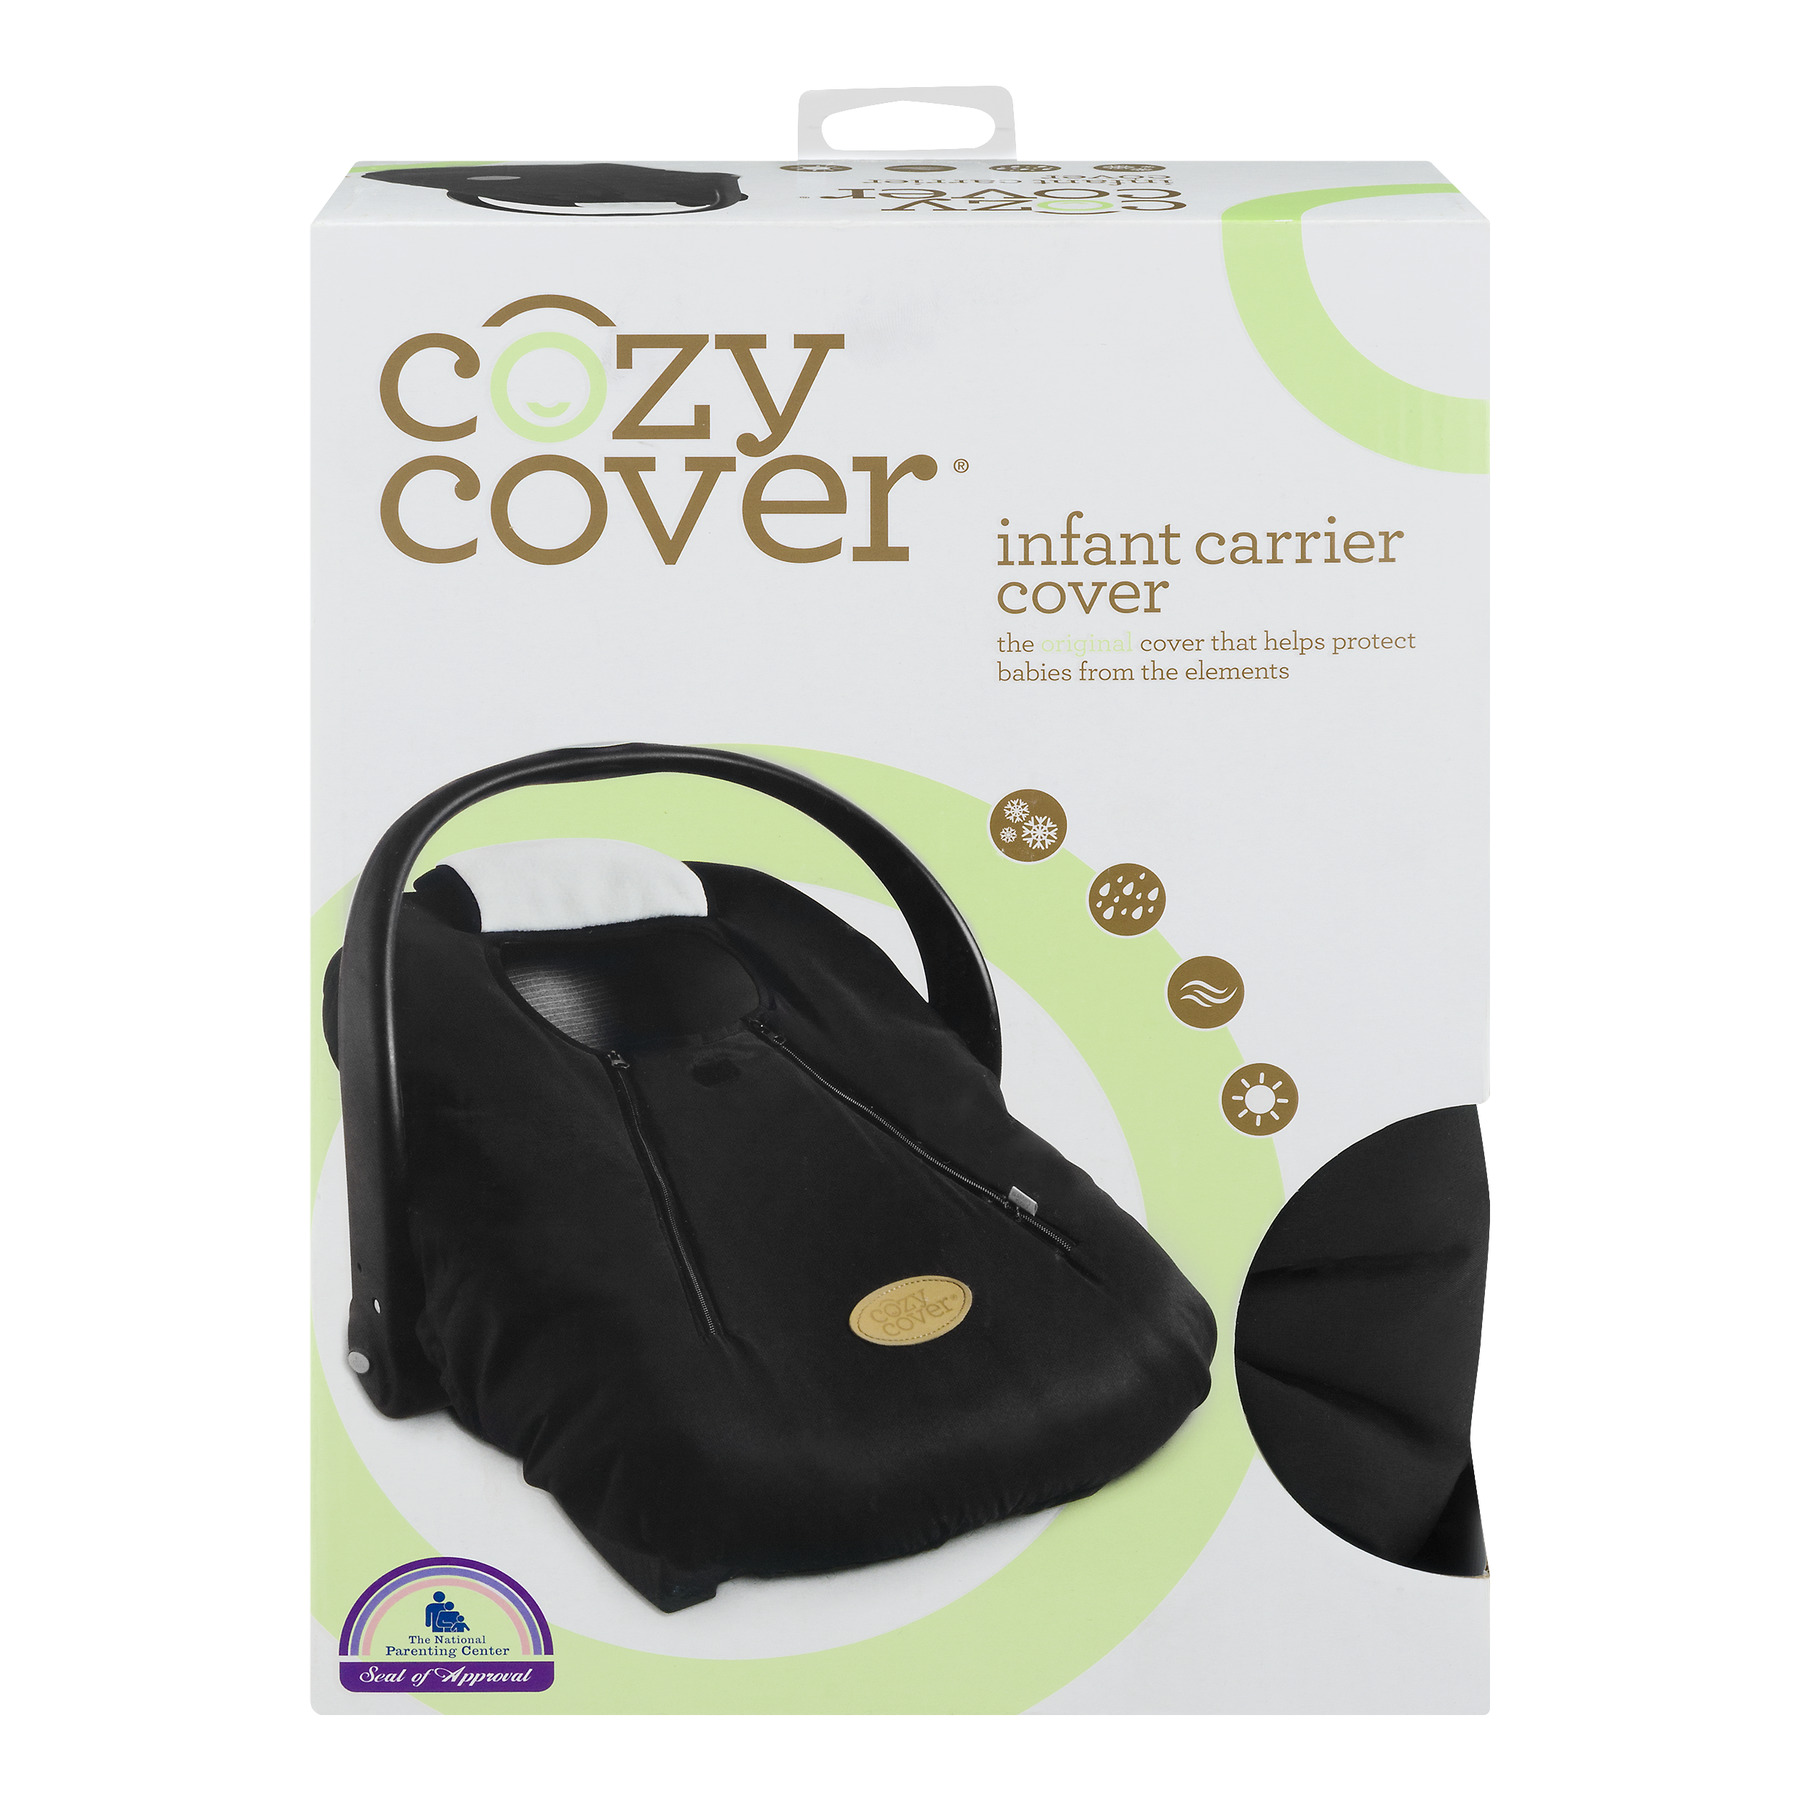 Cozy Cover Infant Carrier Cover, Black